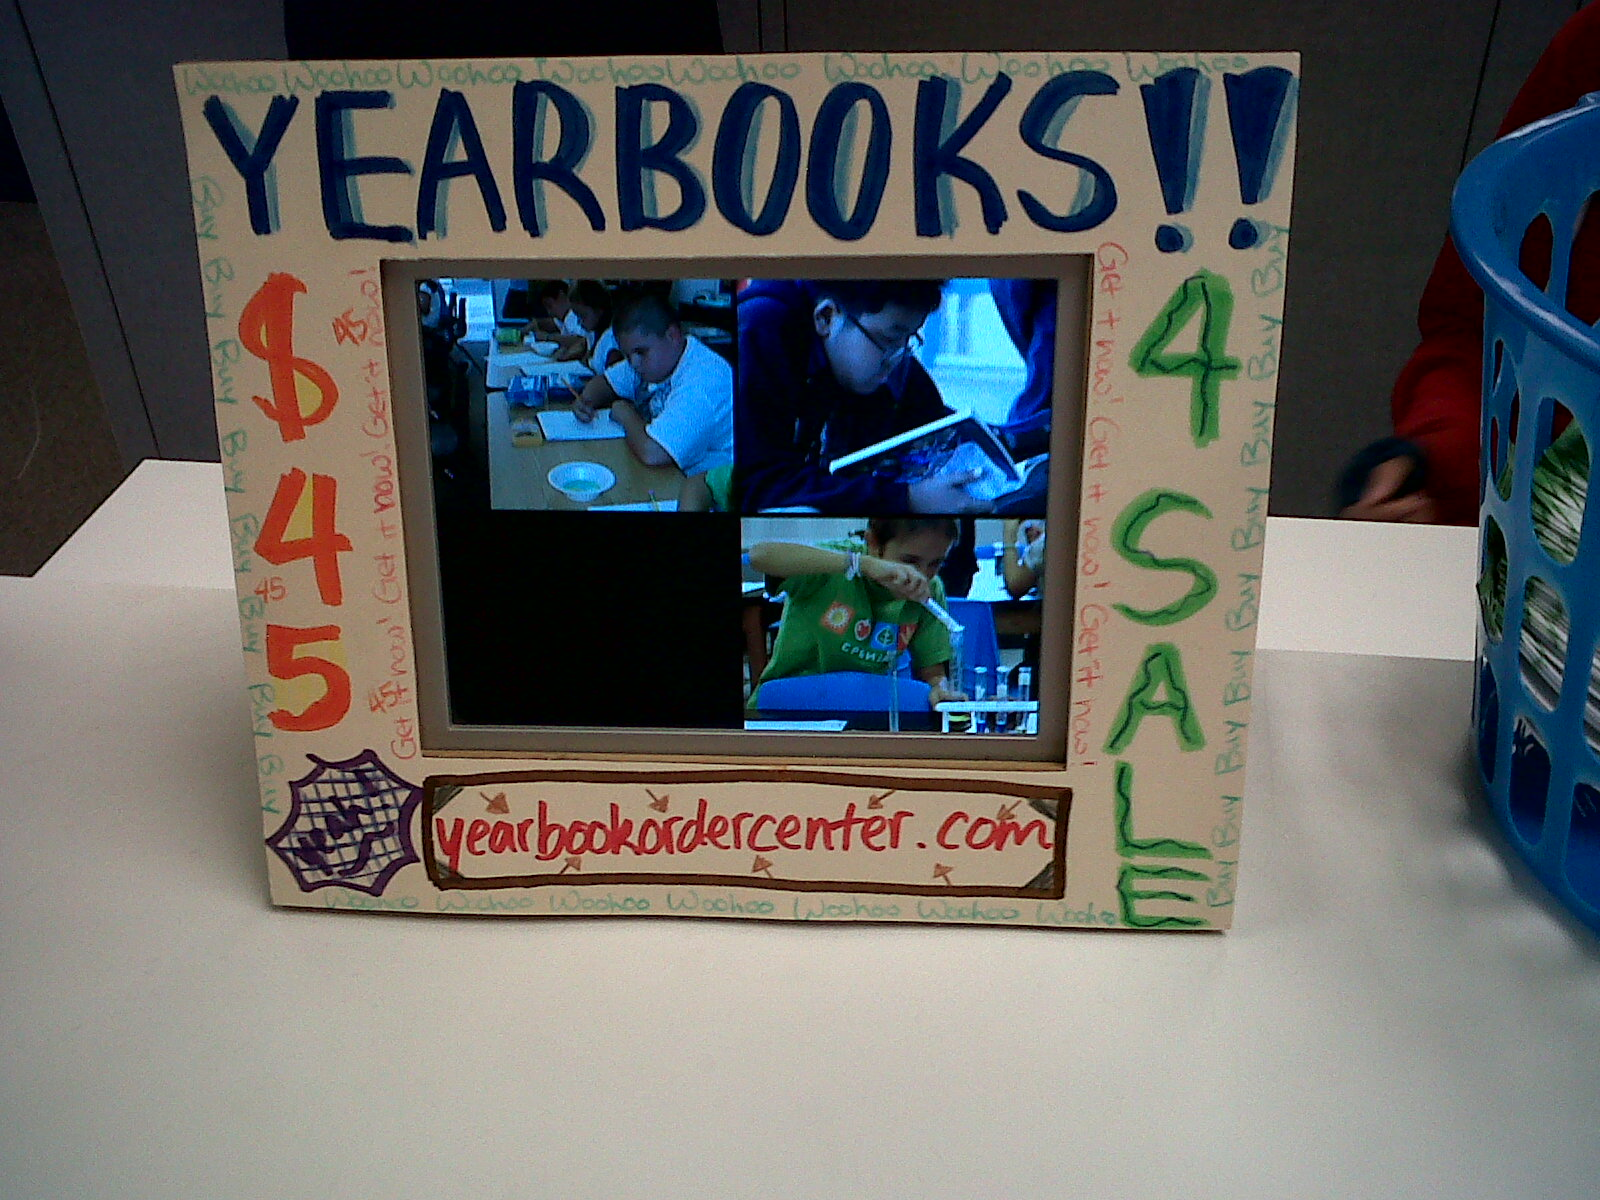 Funny Yearbook Promotion Ideas: Fun Ideas For Selling More Yearbooks